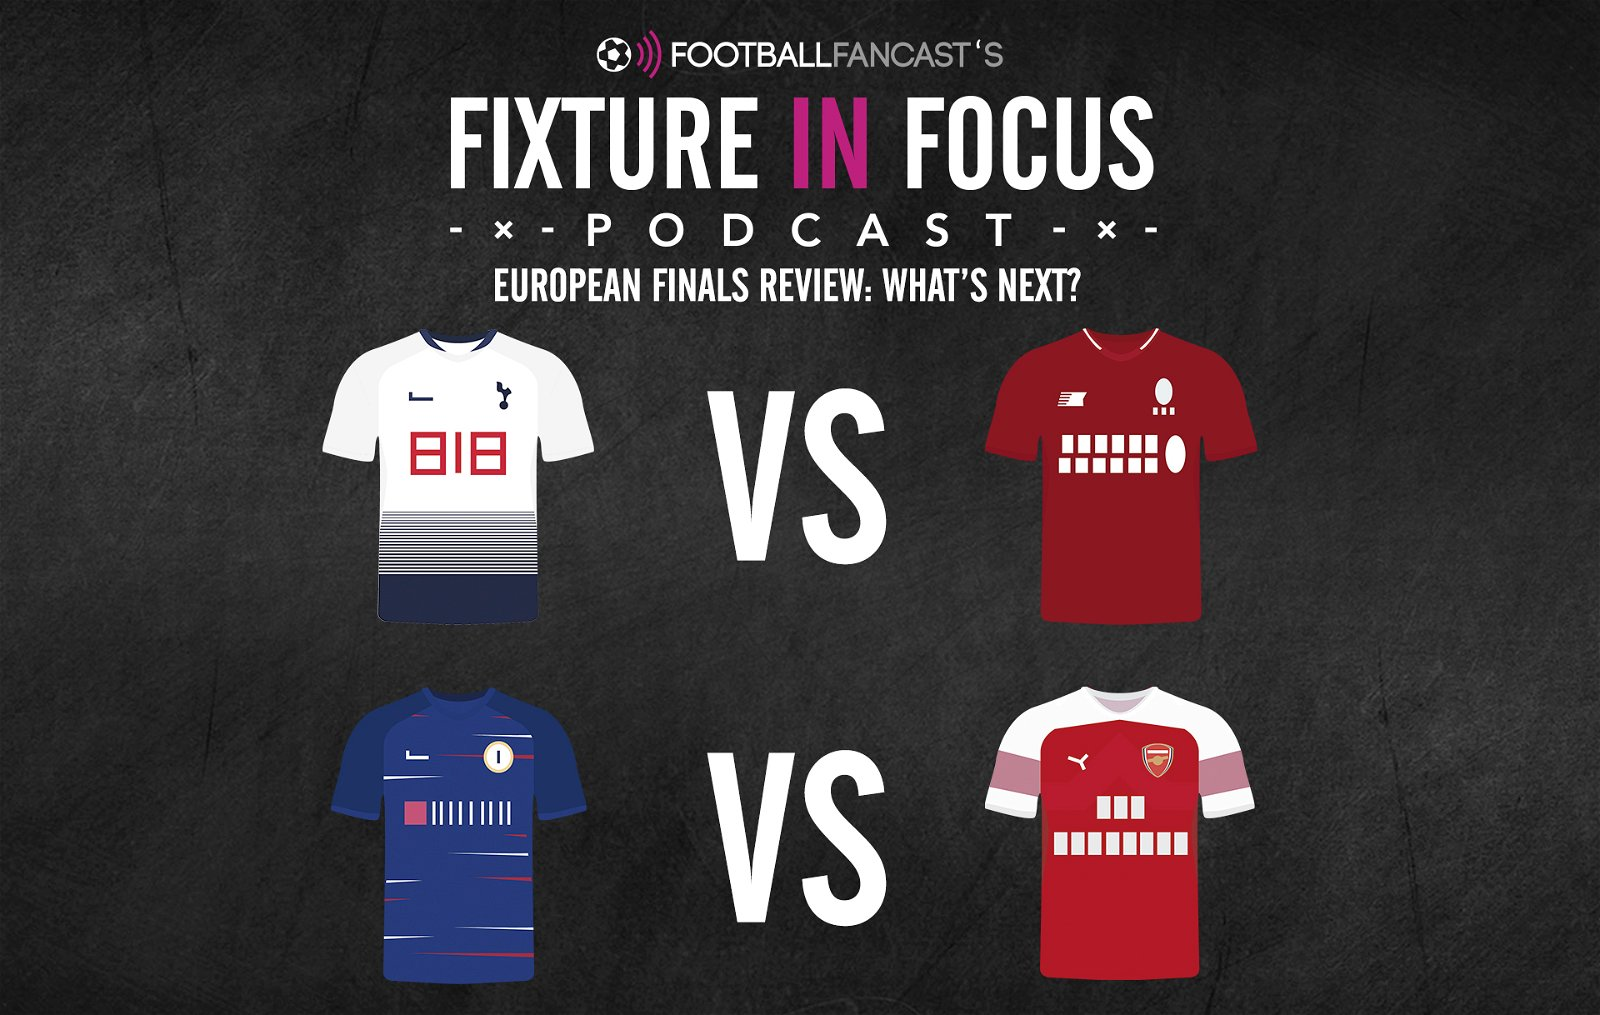 Fixture in Focus Podcast - European Finals Review: What's Next?